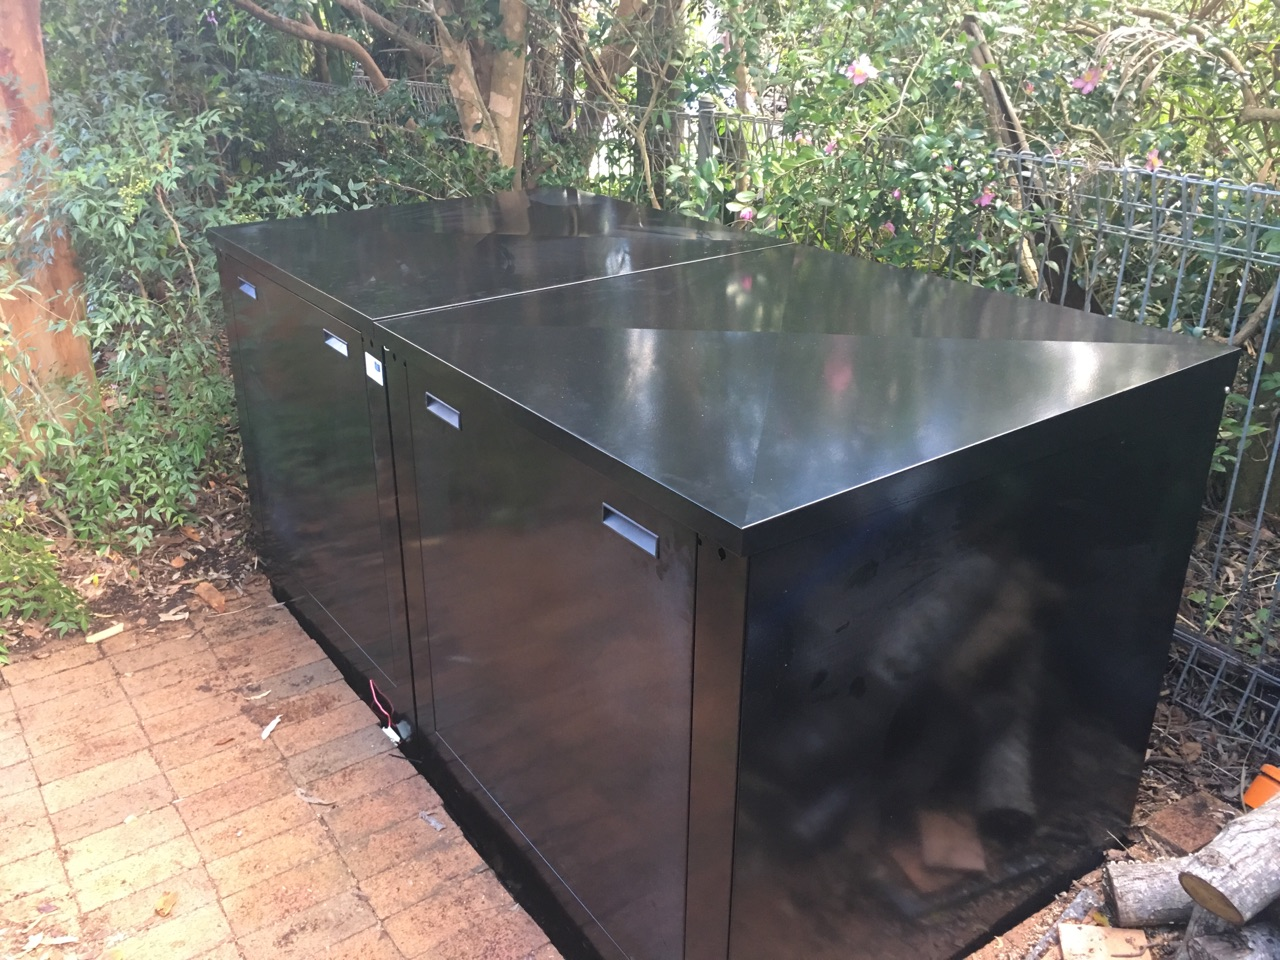 The Large Pool Filter Cover in Classic Black